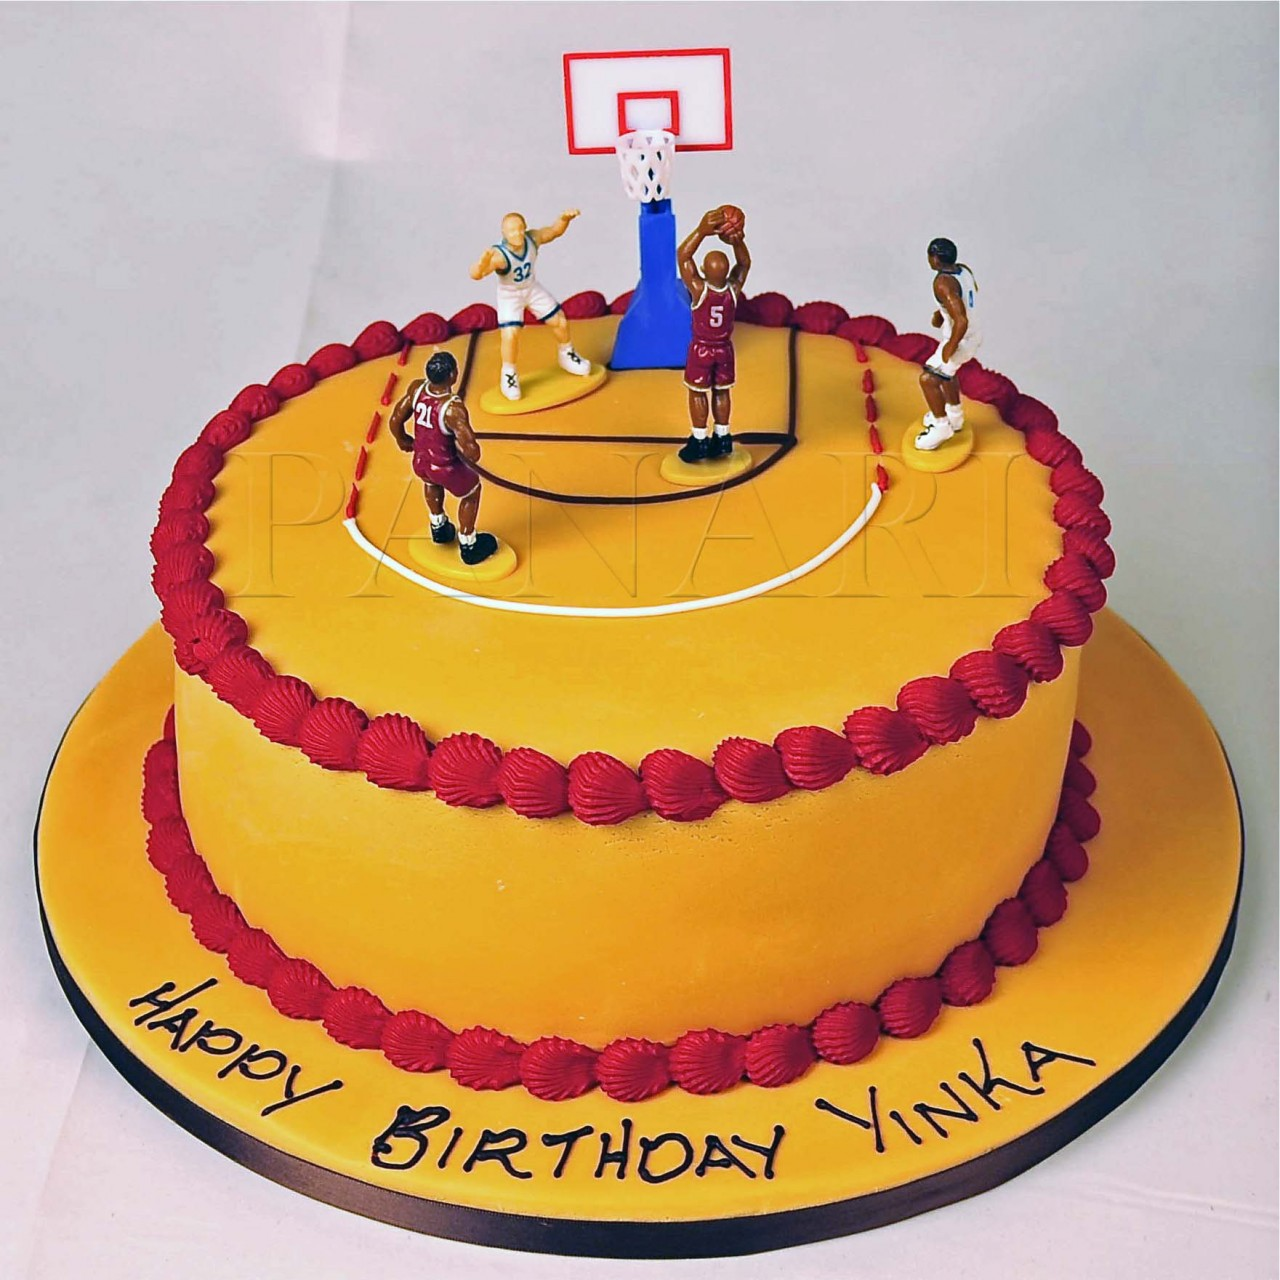 Stupendous Basketball Cakes Decoration Ideas Little Birthday Cakes Funny Birthday Cards Online Alyptdamsfinfo